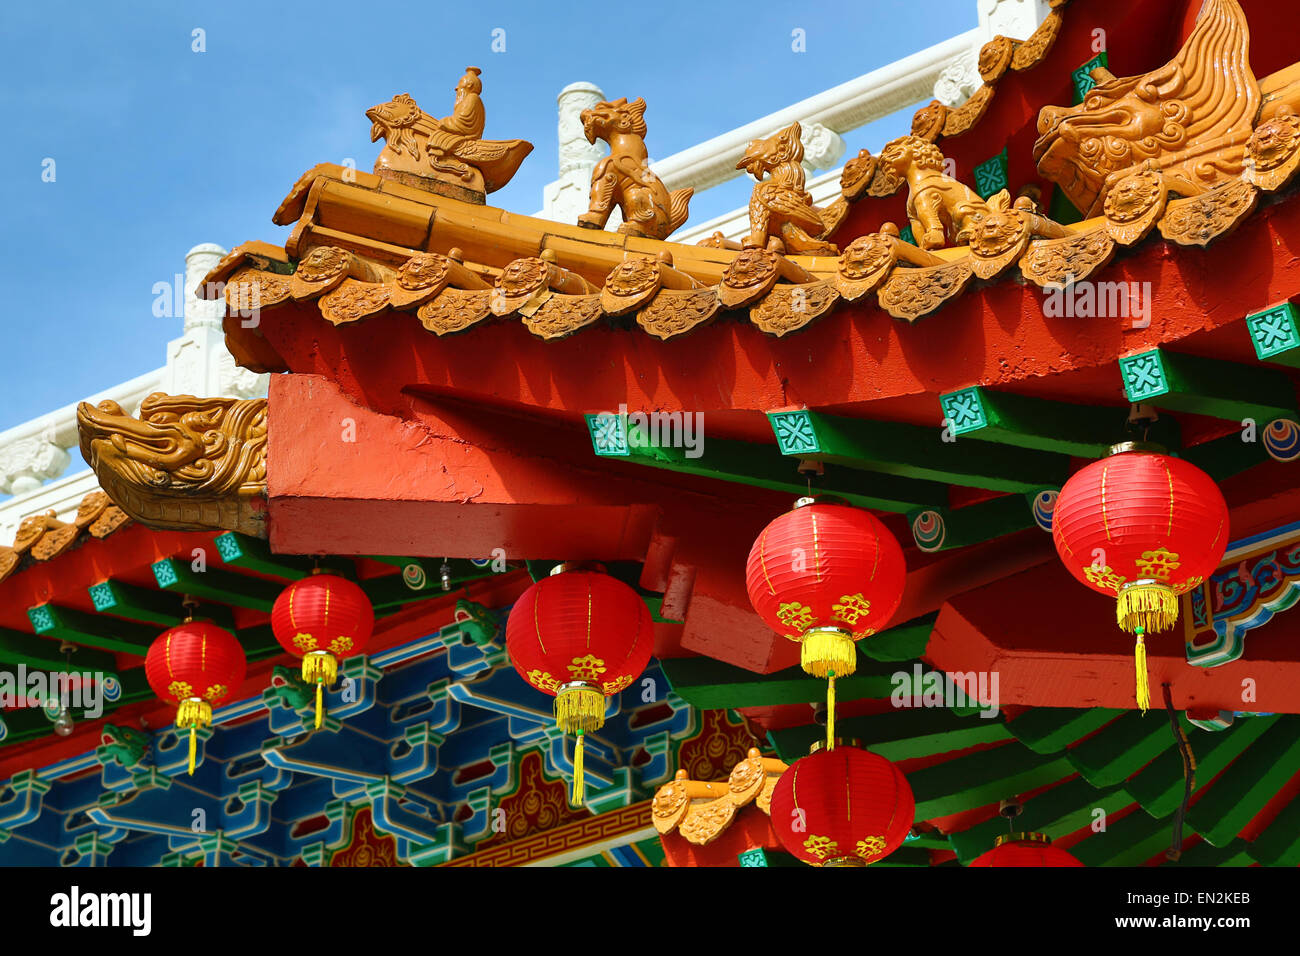 Red lanterns and roof decorations on the Thean Hou Chinese Temple, Kuala Lumpur, Malaysia - Stock Image